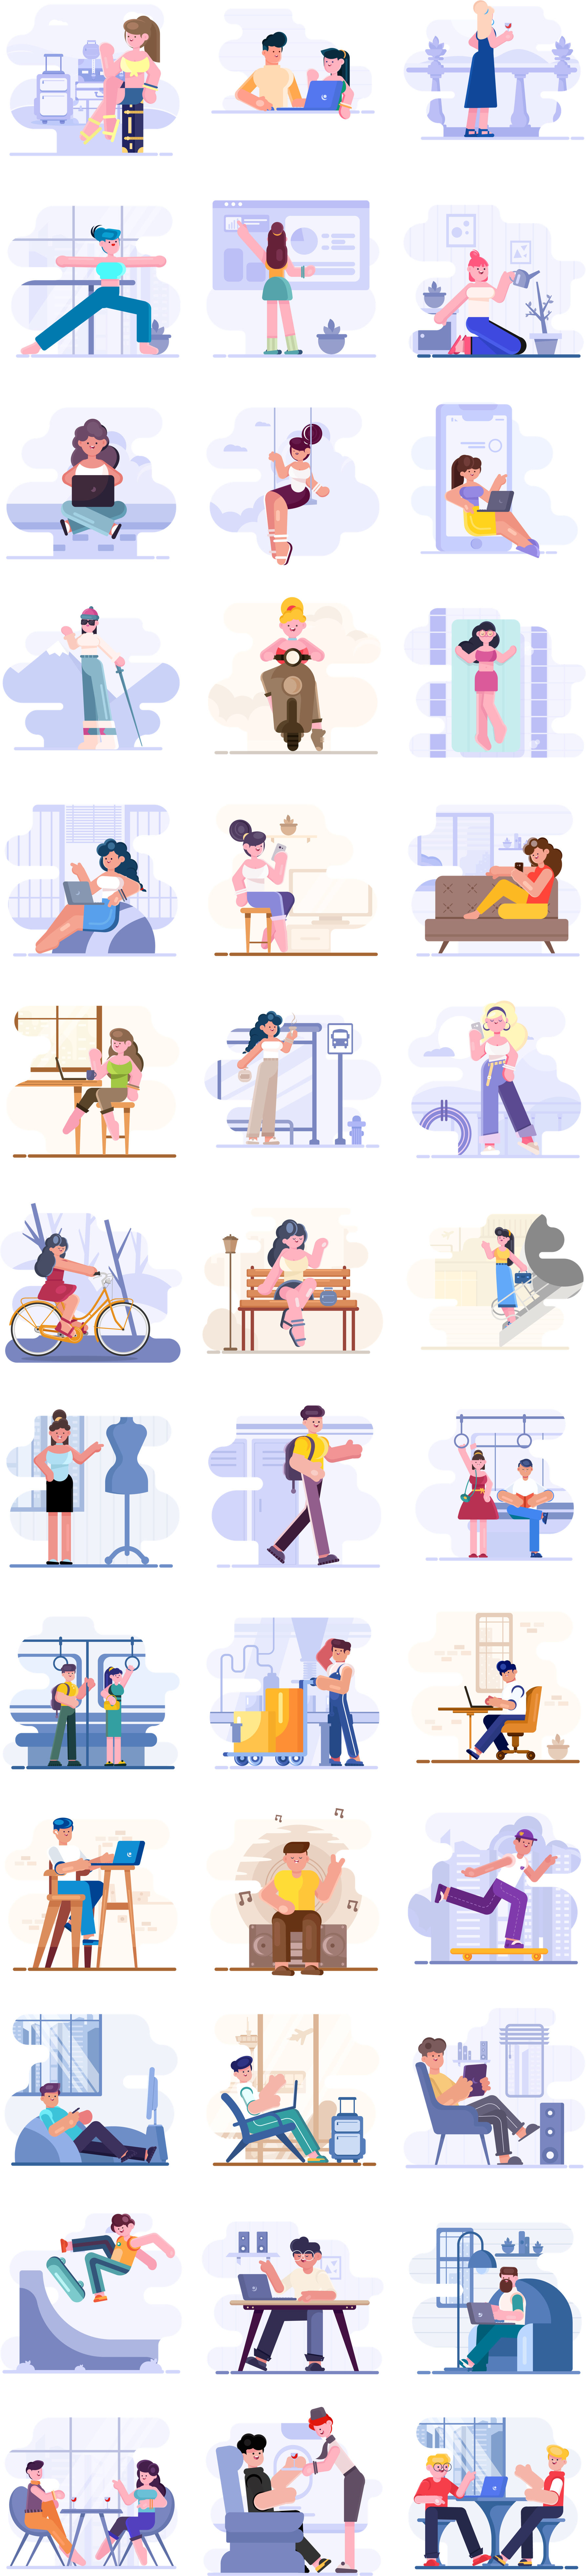 Loomies - 39 Free Illustrations - 39 free illustrations elements. Simplified cute characters illustrations for websites and application screens. If you're looking for cute cartoony characters to tell your stories, look no further than our newest character illustrations